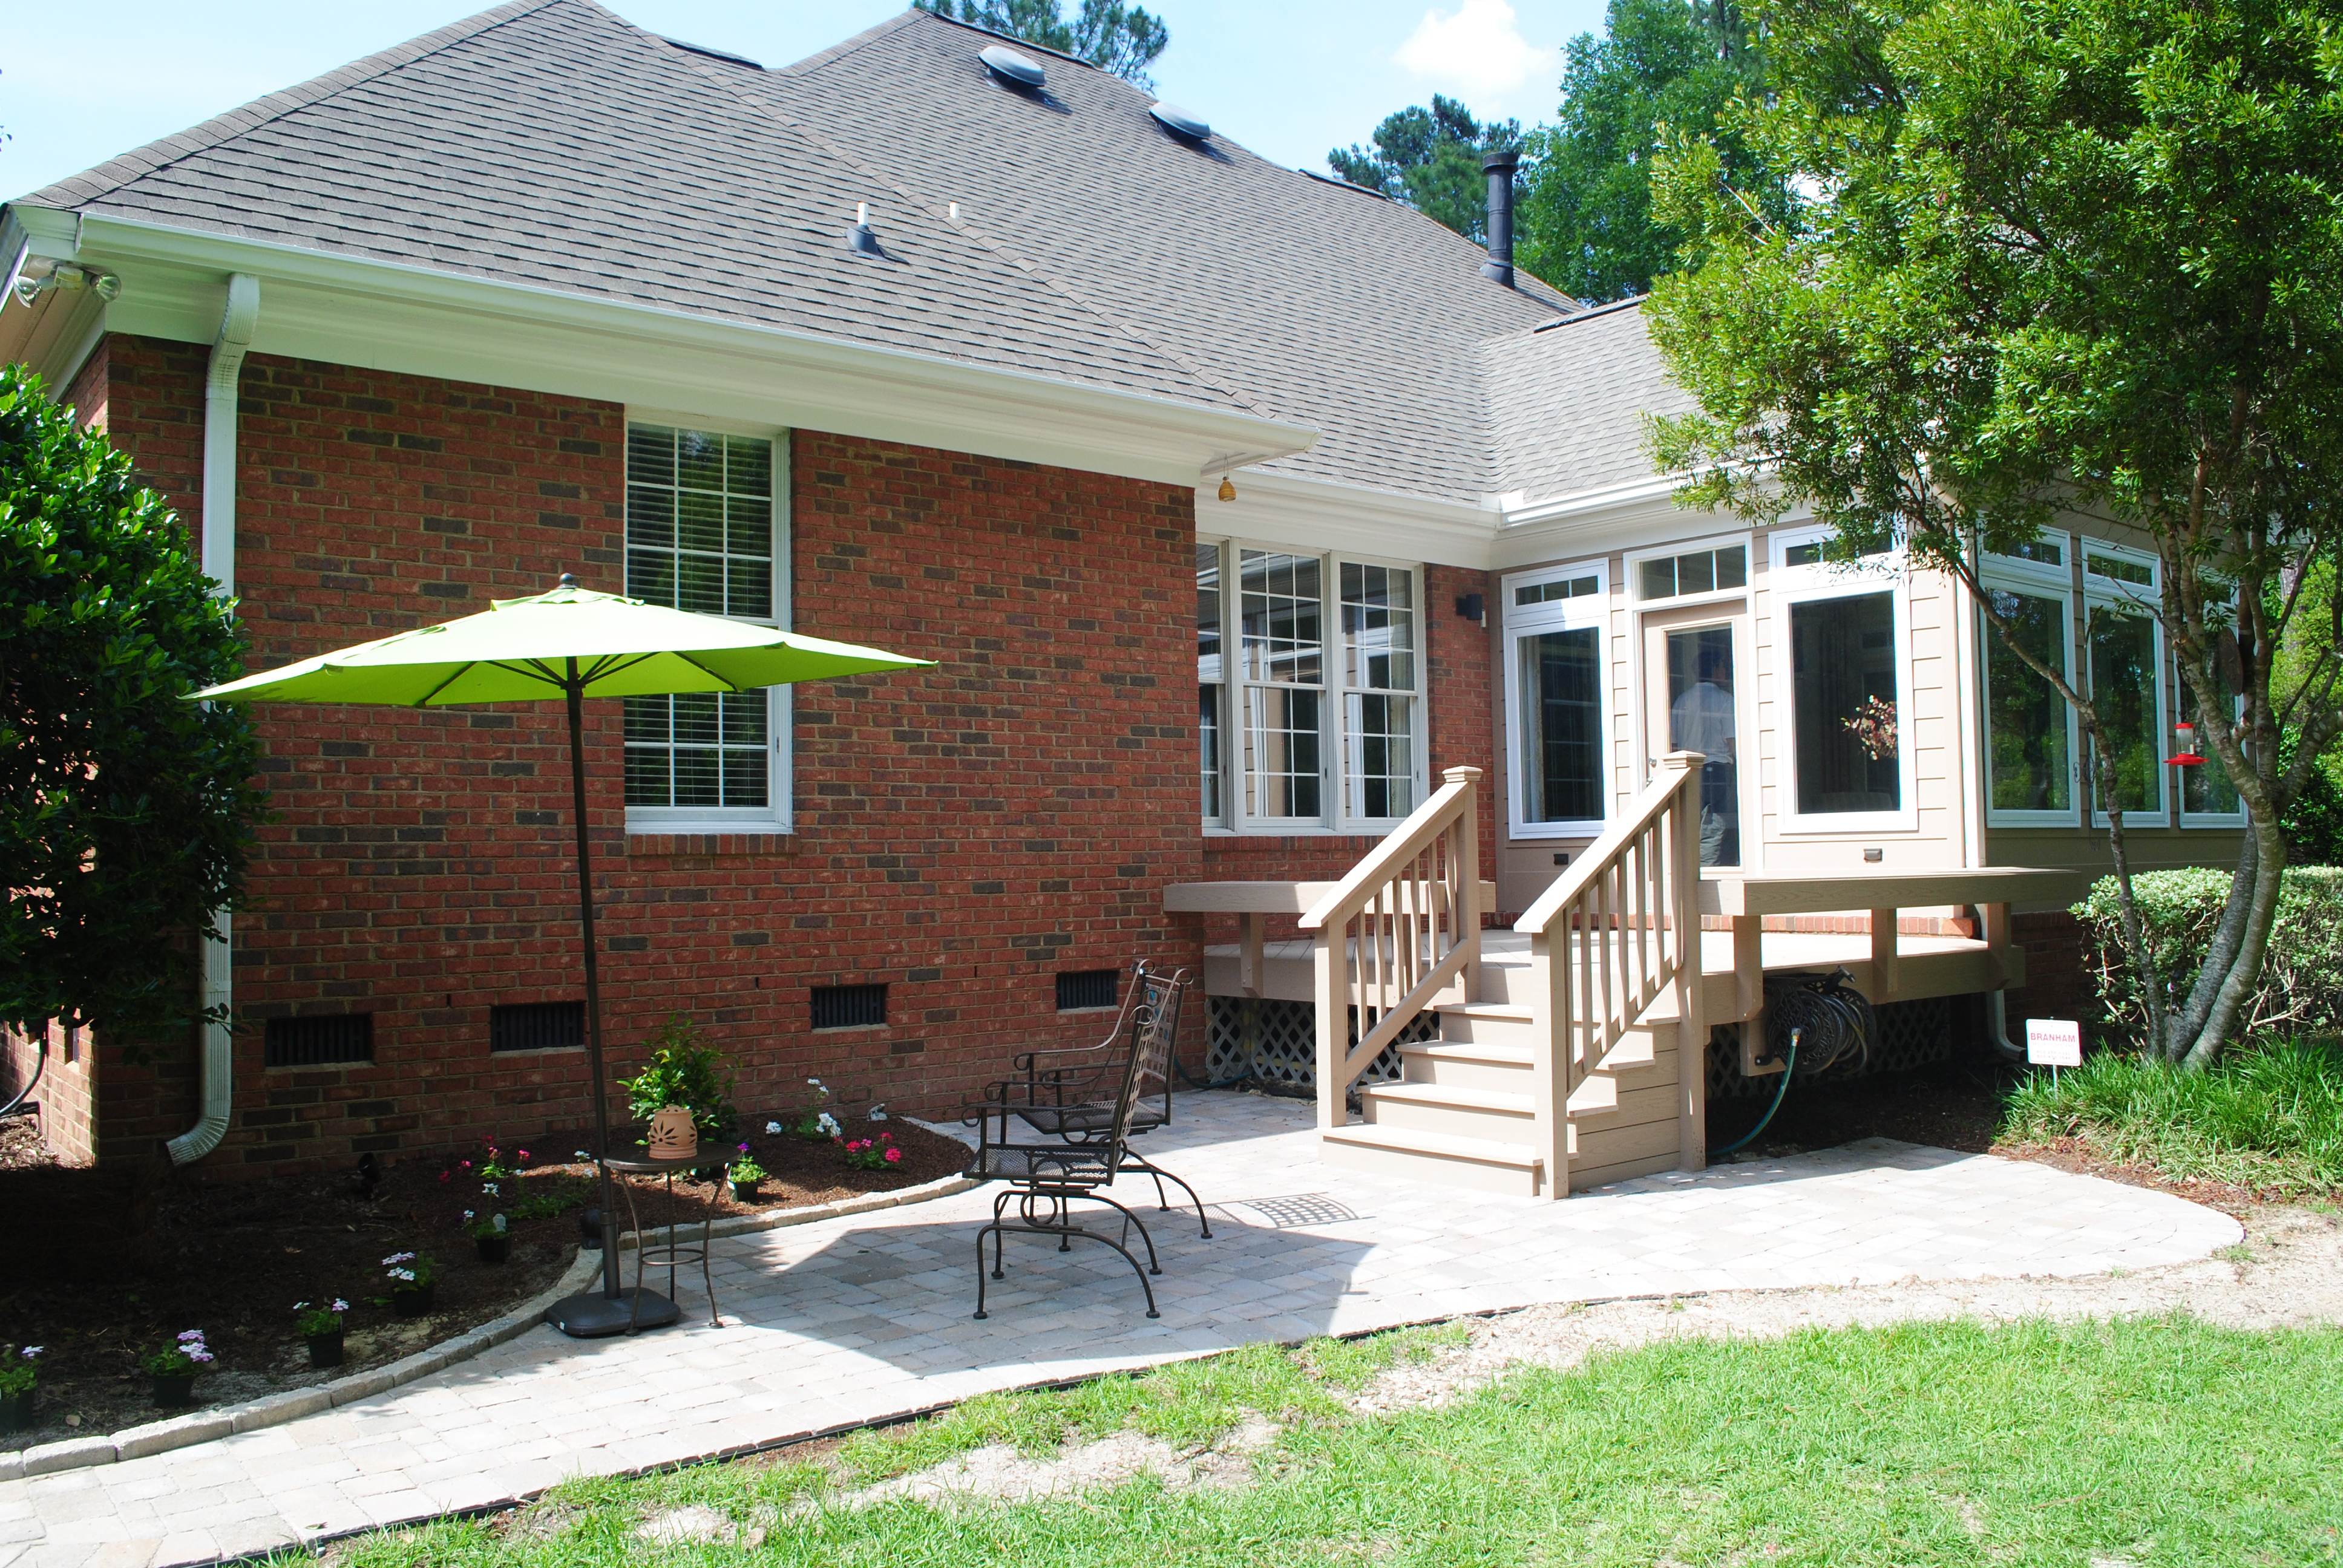 Custom decks porches patios sunrooms and more for Building a sunroom on a deck